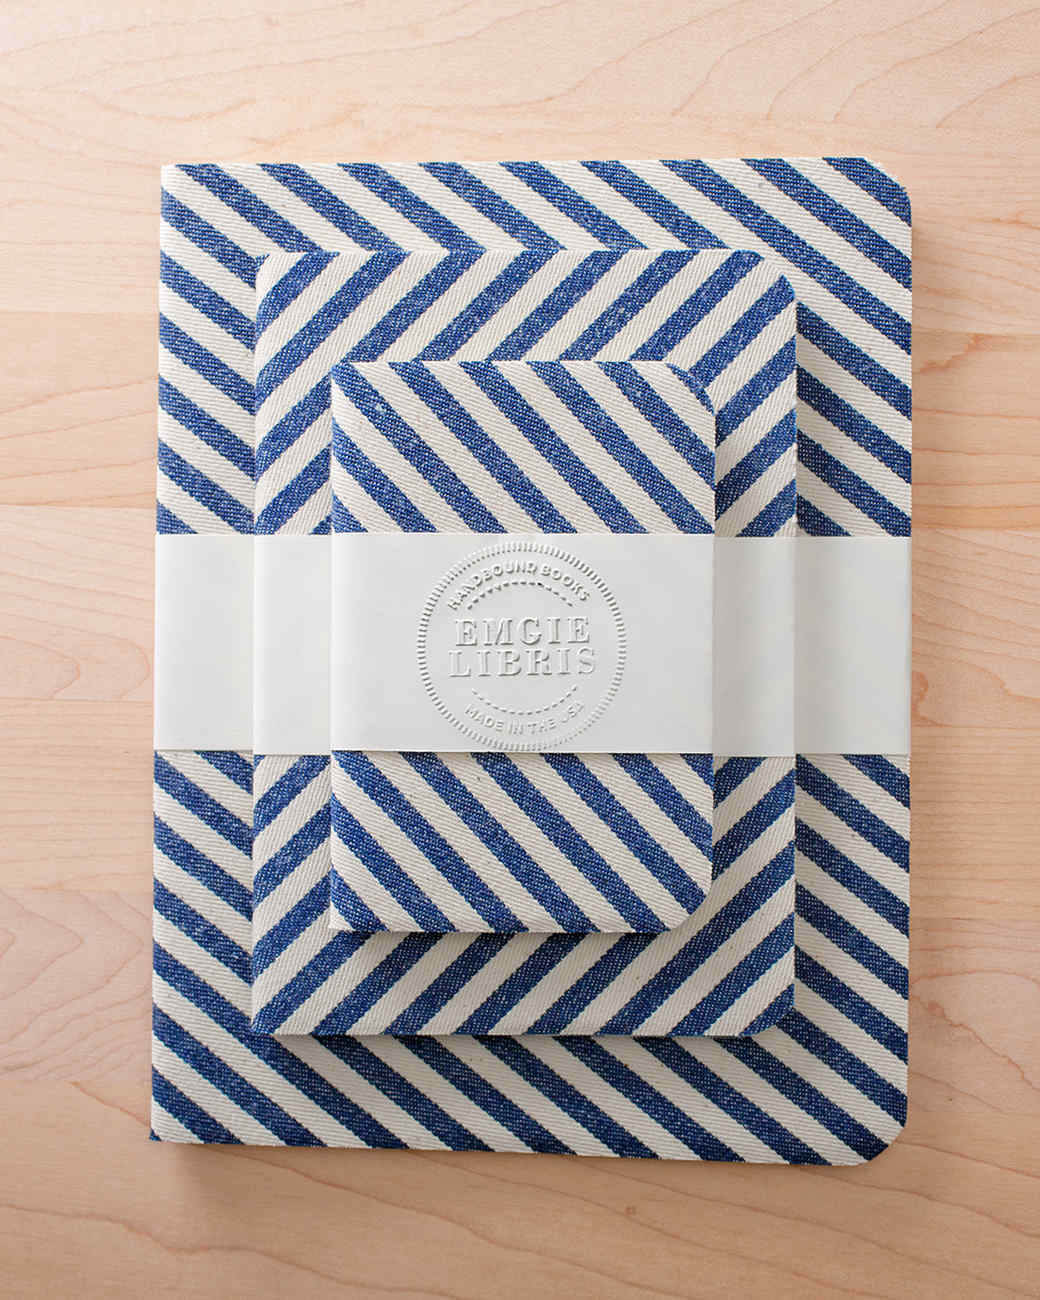 emgie-libris-chevron-notebook-0414.jpg